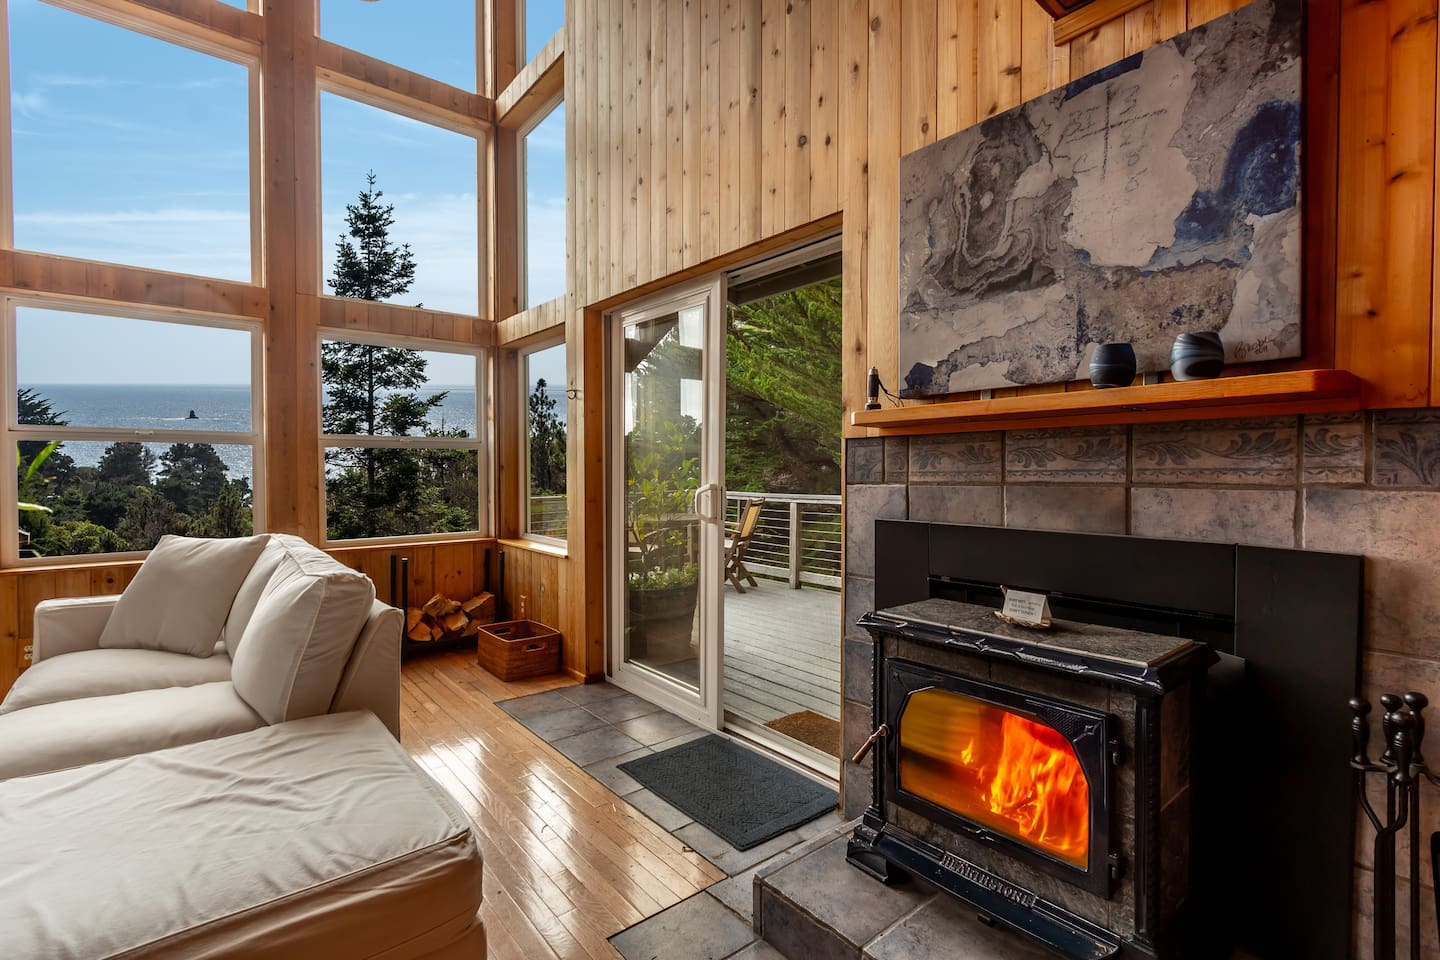 Relax in the Living Area with great views of the ocean and forest.